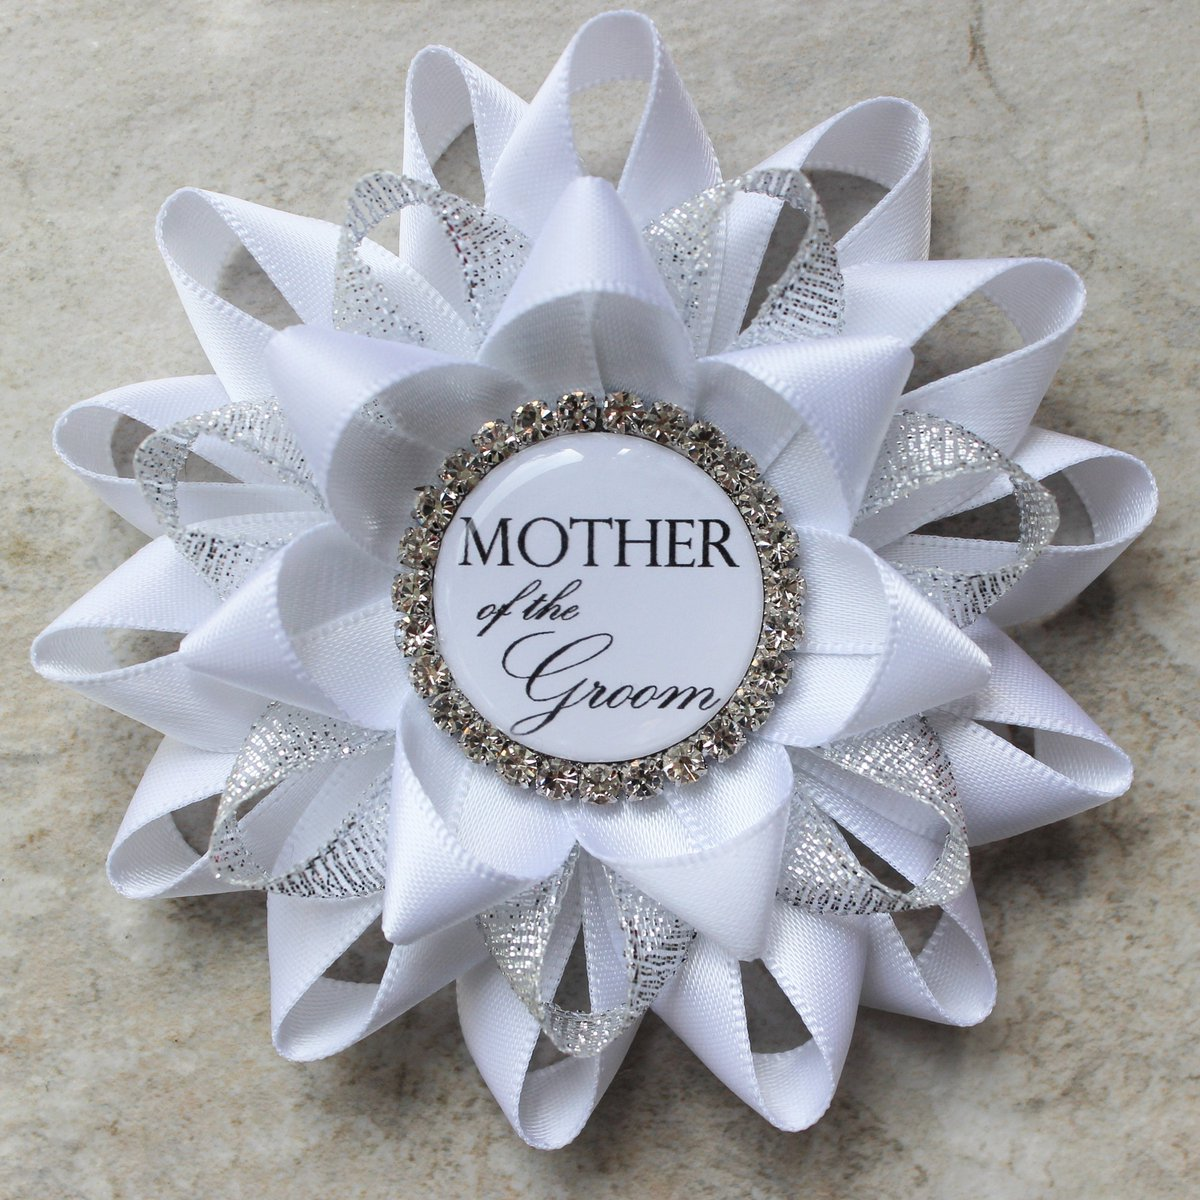 Bridal Shower Pins, Mother of the Groom Gift Ideas, Engagement Party or Bridal Shower Gifts for Bridal Party  #ecommerce #shopping #etsyshop #shopsmall #gifts #style #smallbiz #etsy